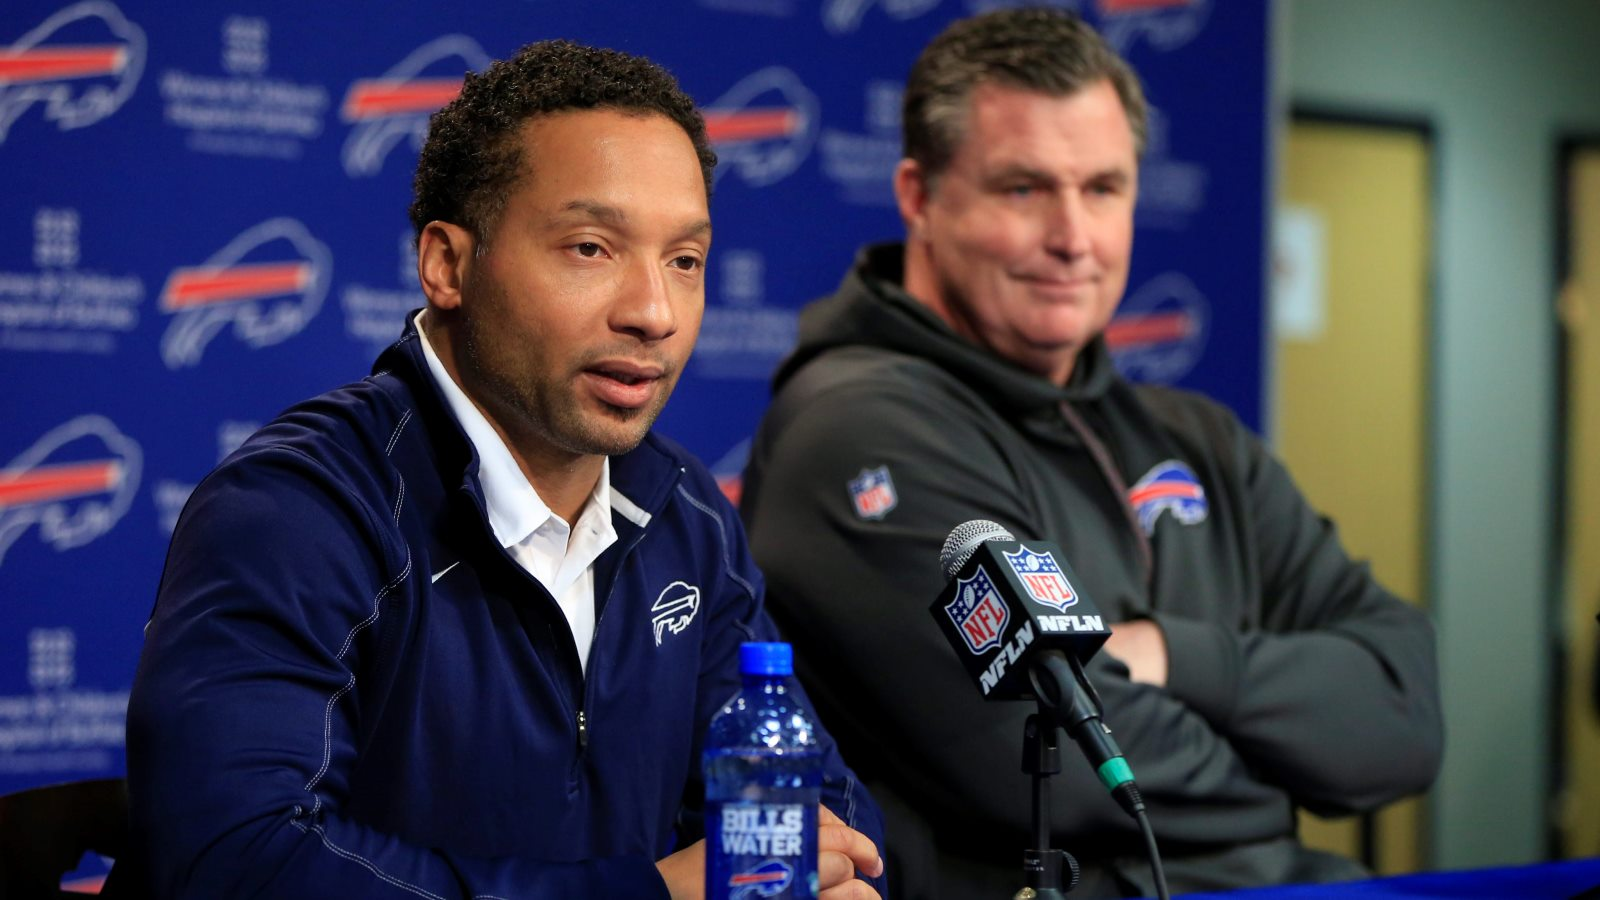 Doug Whaley, left, and Doug Marrone during their time with the Bills. (Harry Scull Jr./News file photo)